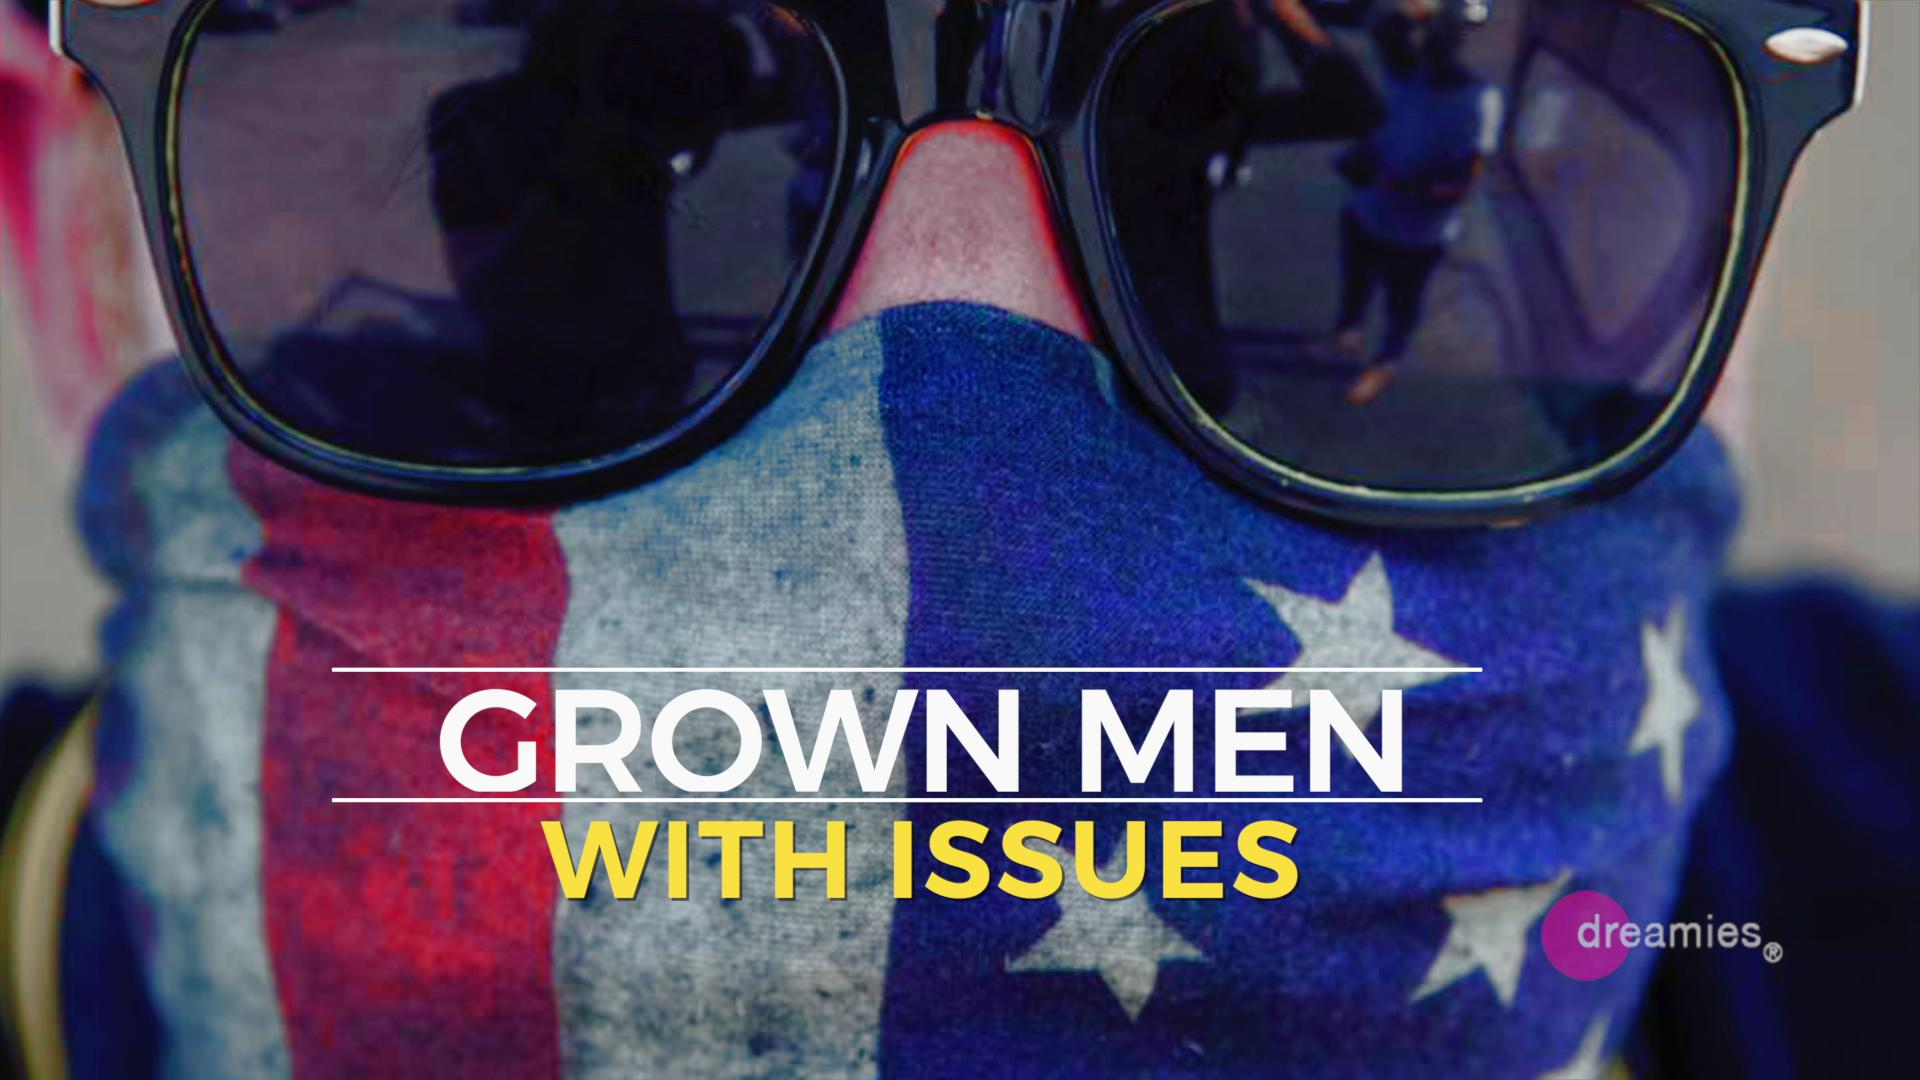 GrownMenWithIssues